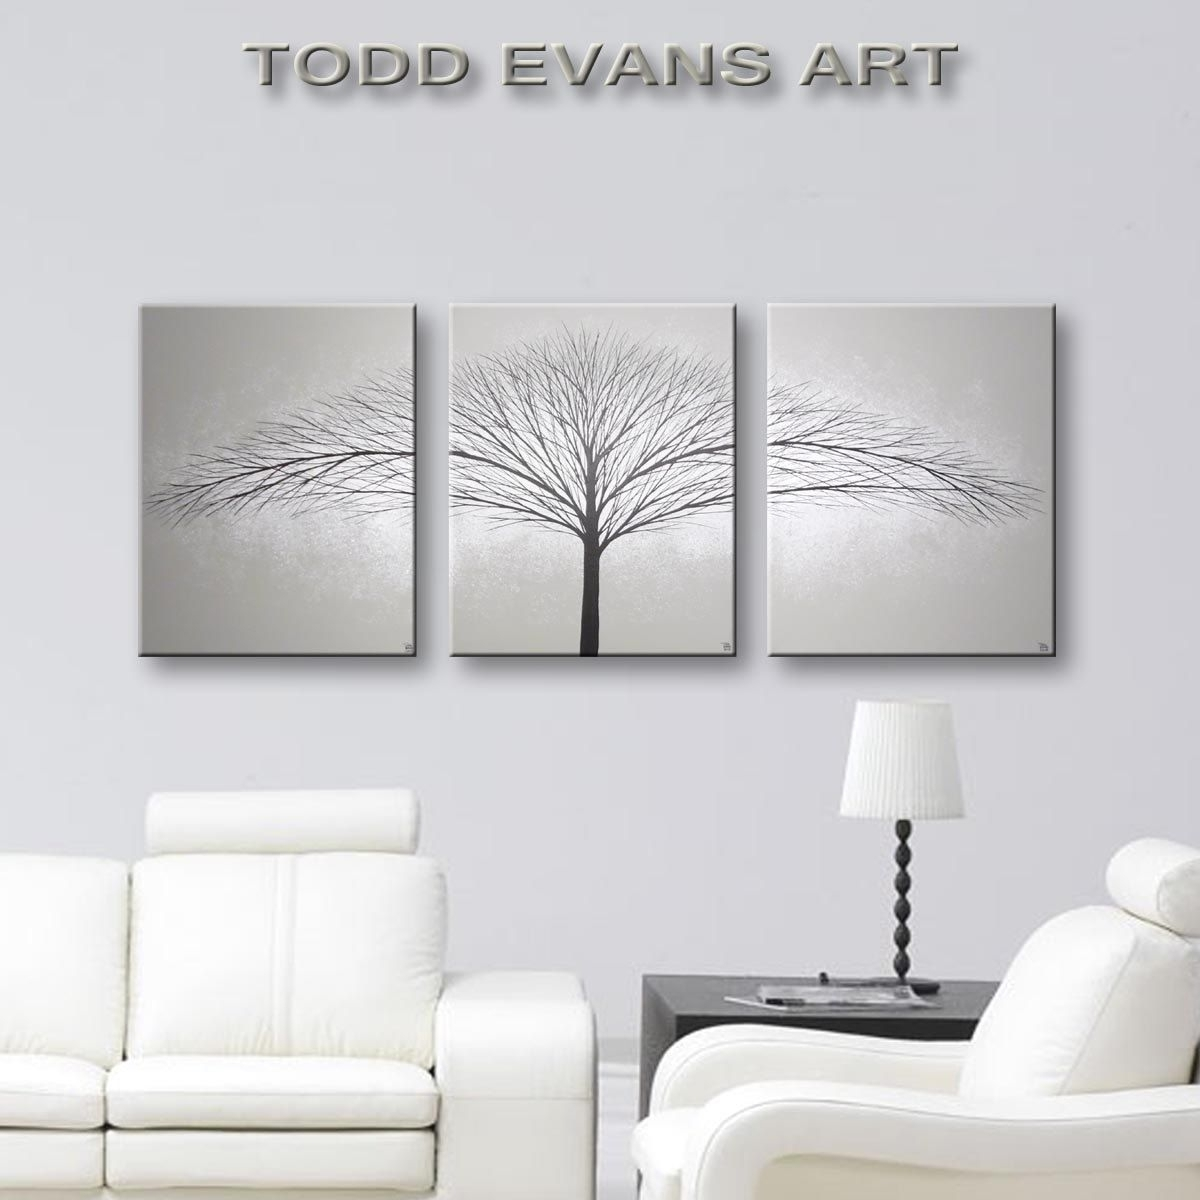 Sensational Grey Wall Decor Art Canvas Painting Piece Minimalist Inside Most Recently Released Grey Wall Art (View 19 of 20)